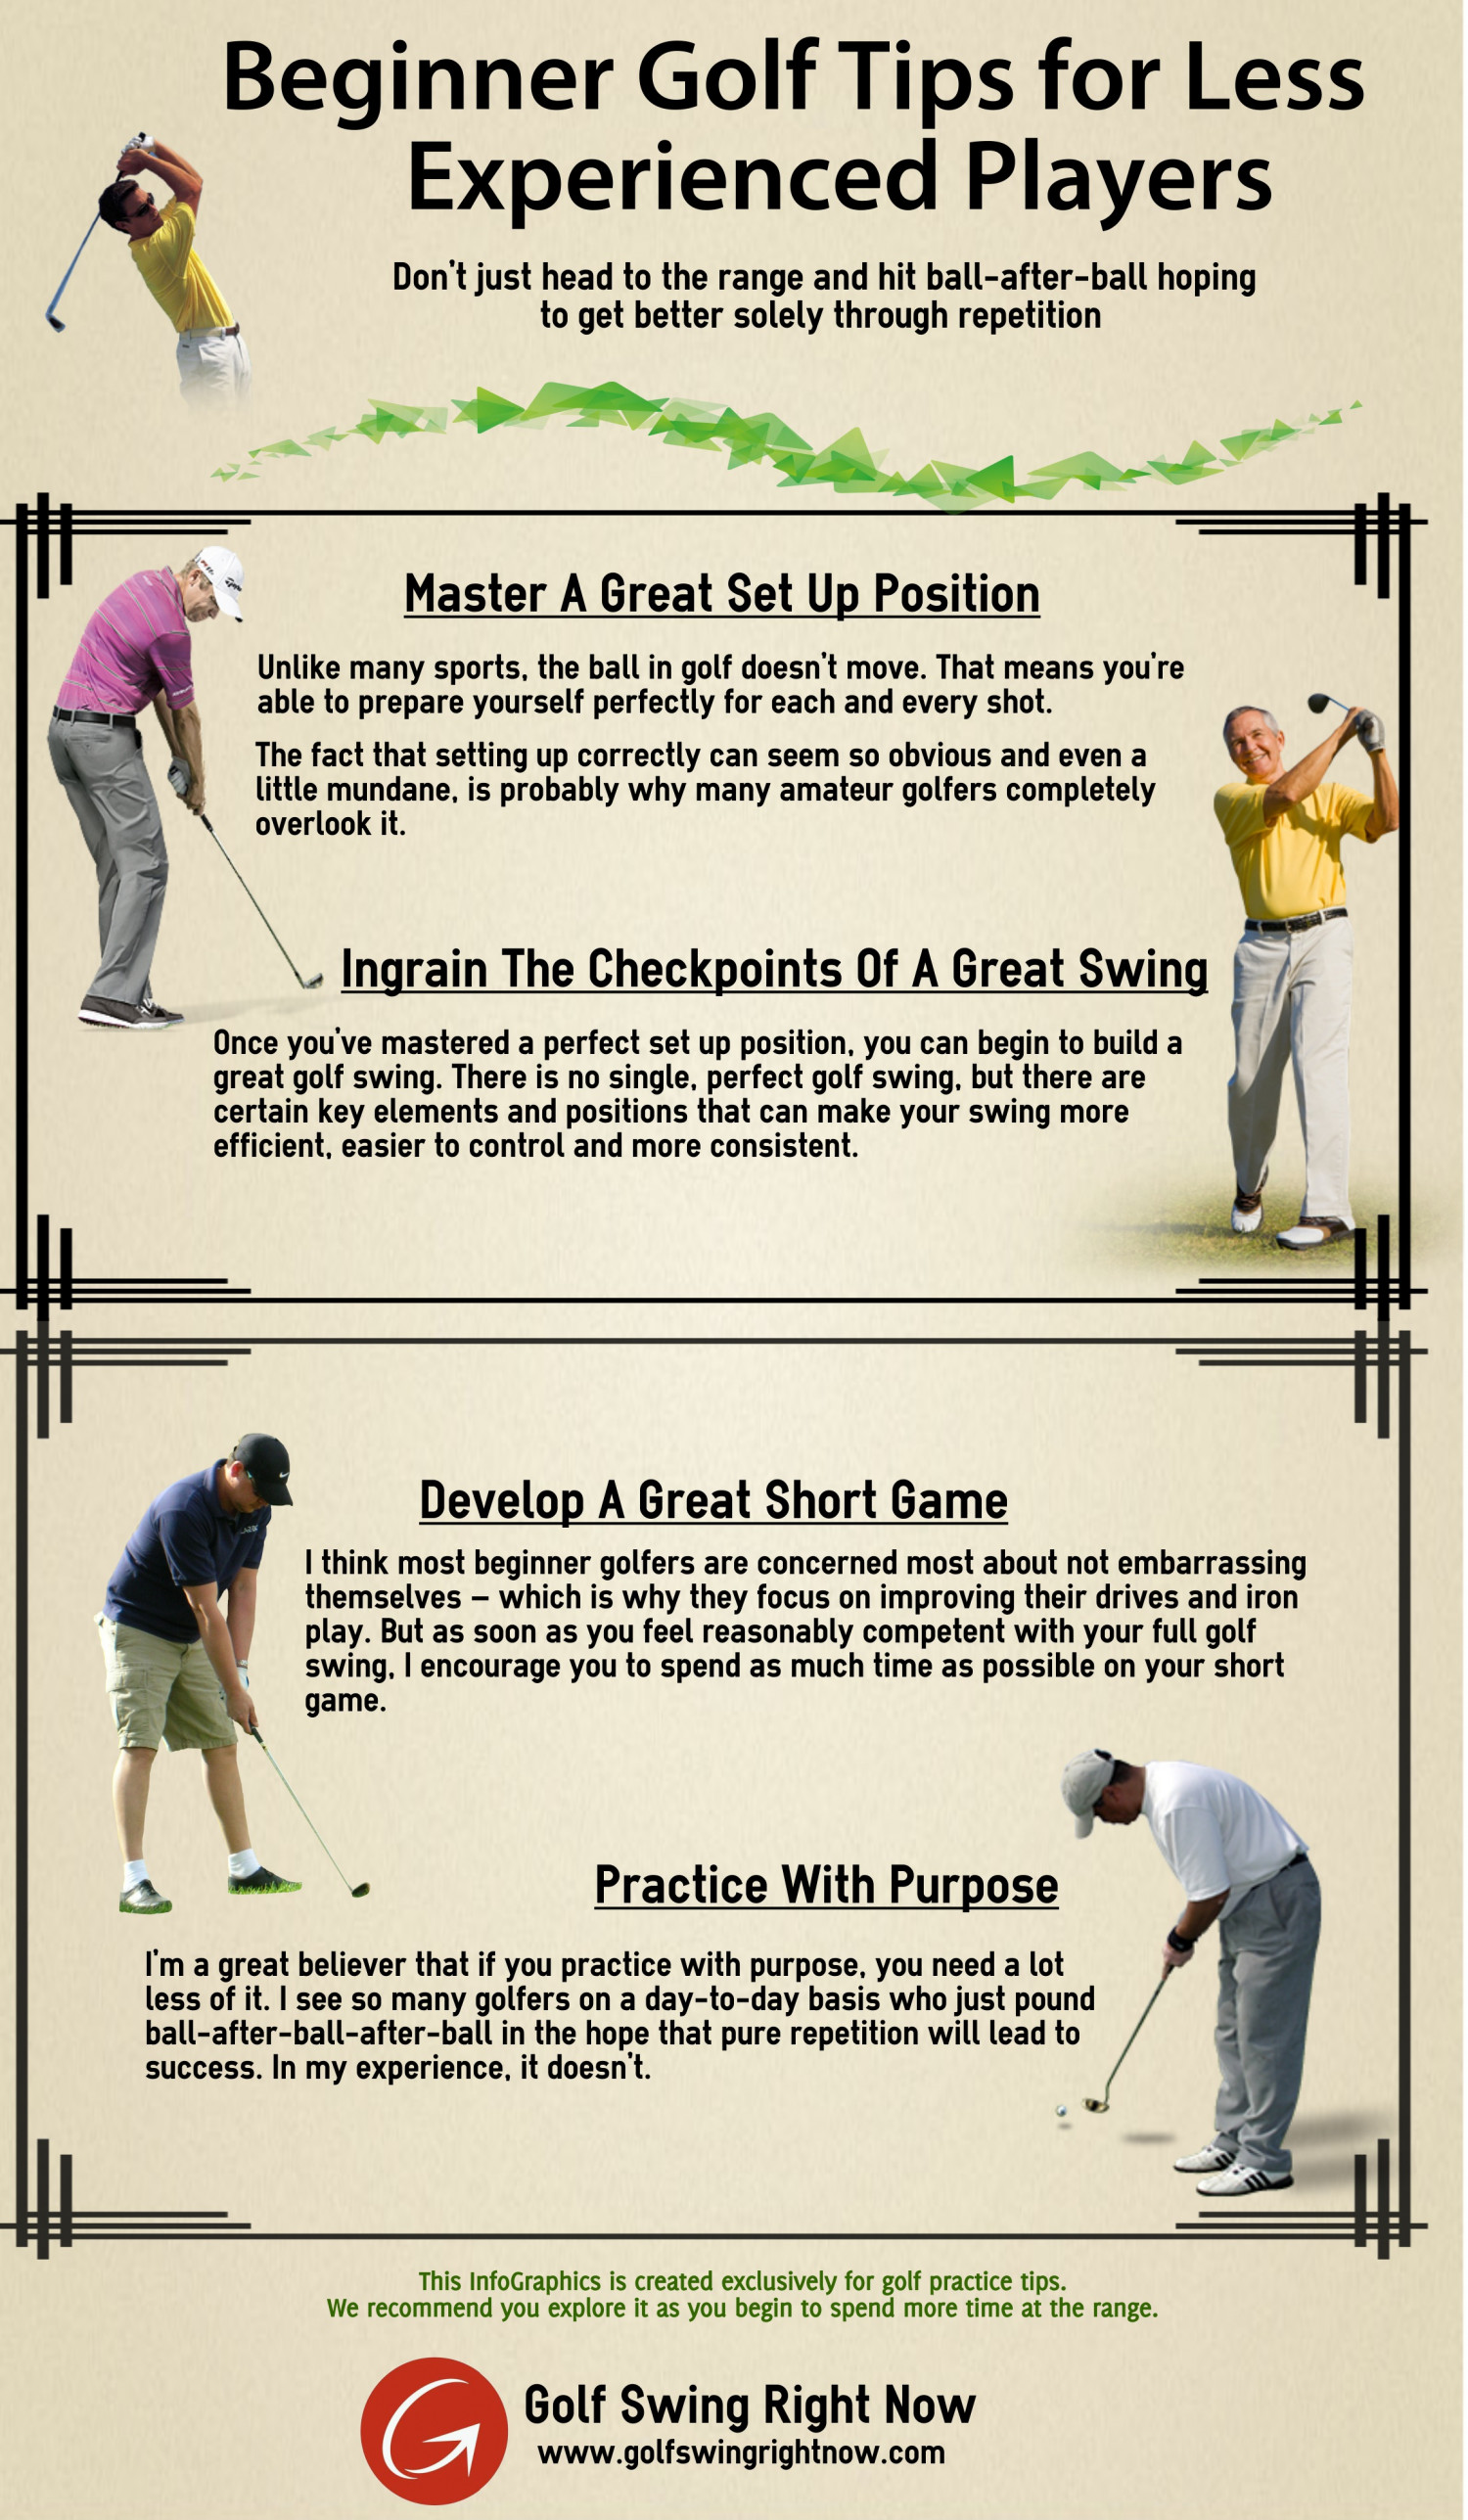 Beginner Golf Tips for Less Experienced Players Infographic